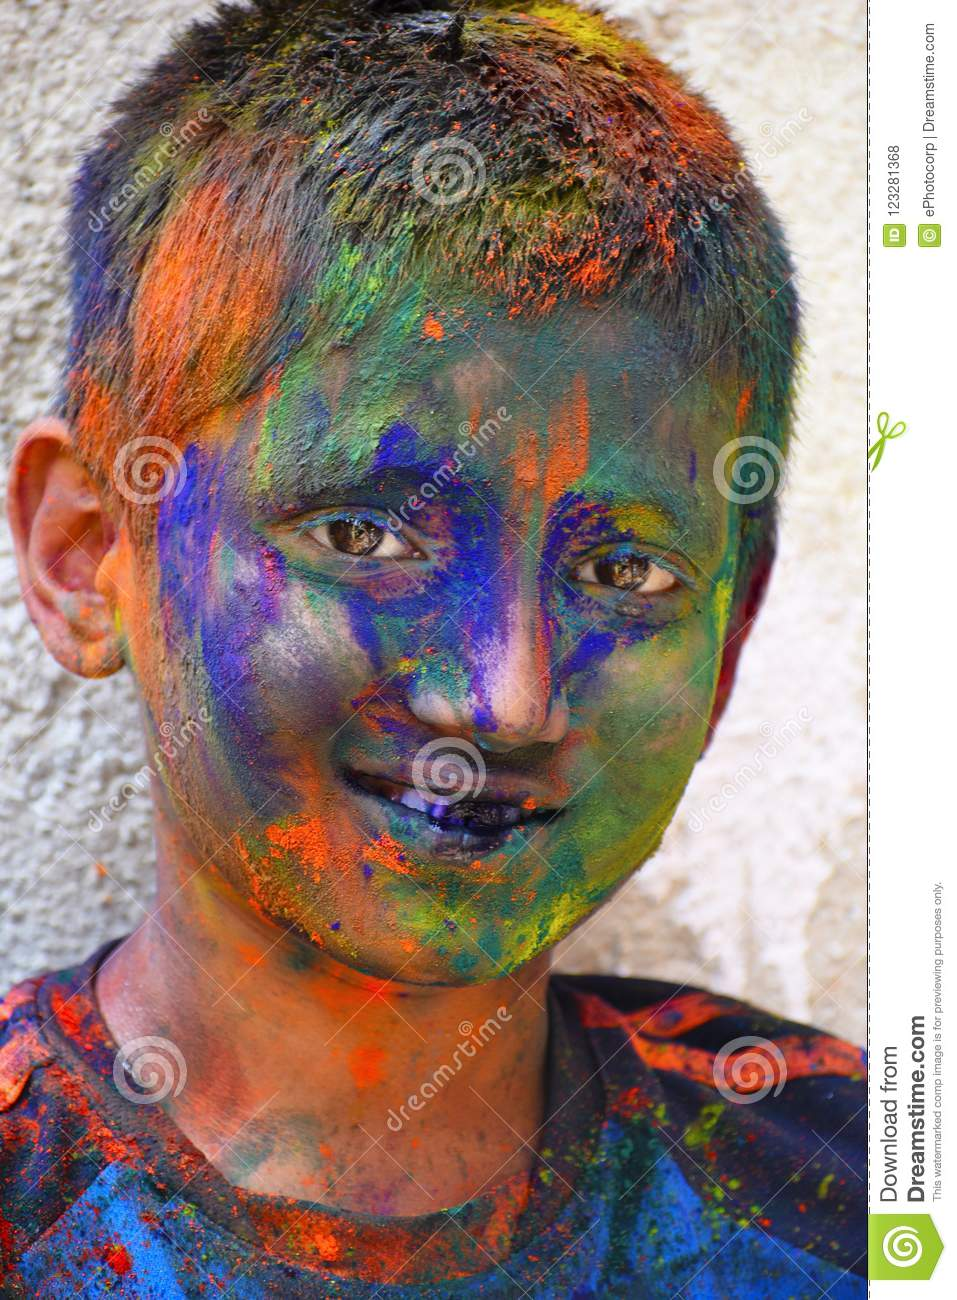 Young boy celebrating of Holi festival with colored powder on face, Yerawada